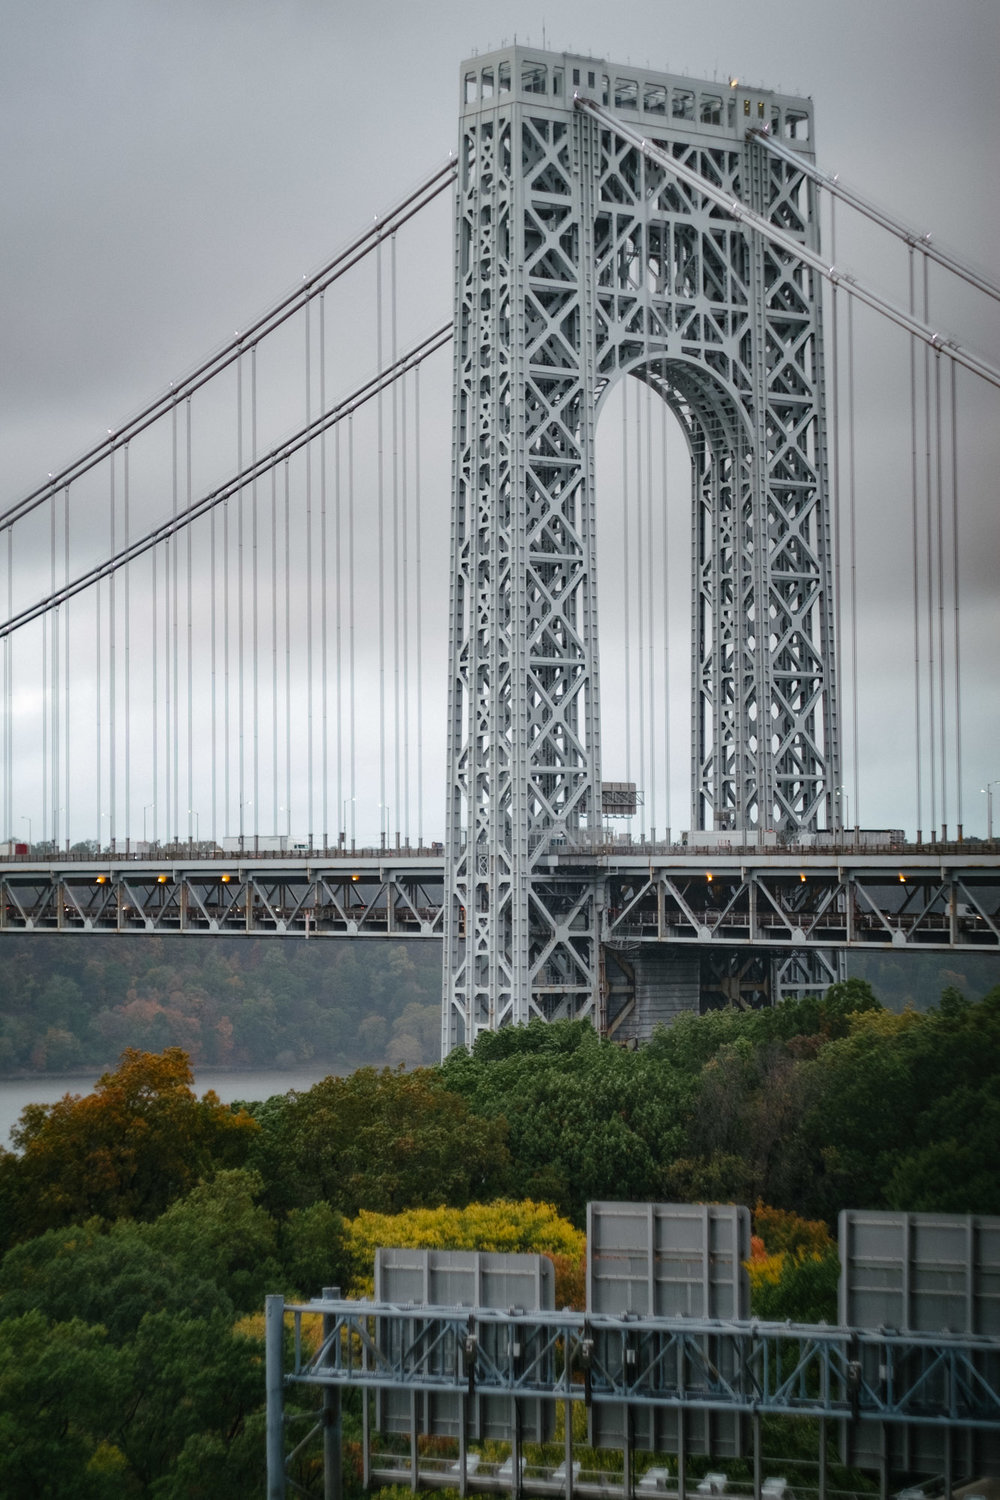 George Washington Bridge on a rainy October day. Fuji X-Pro 1, Helios 44-4.